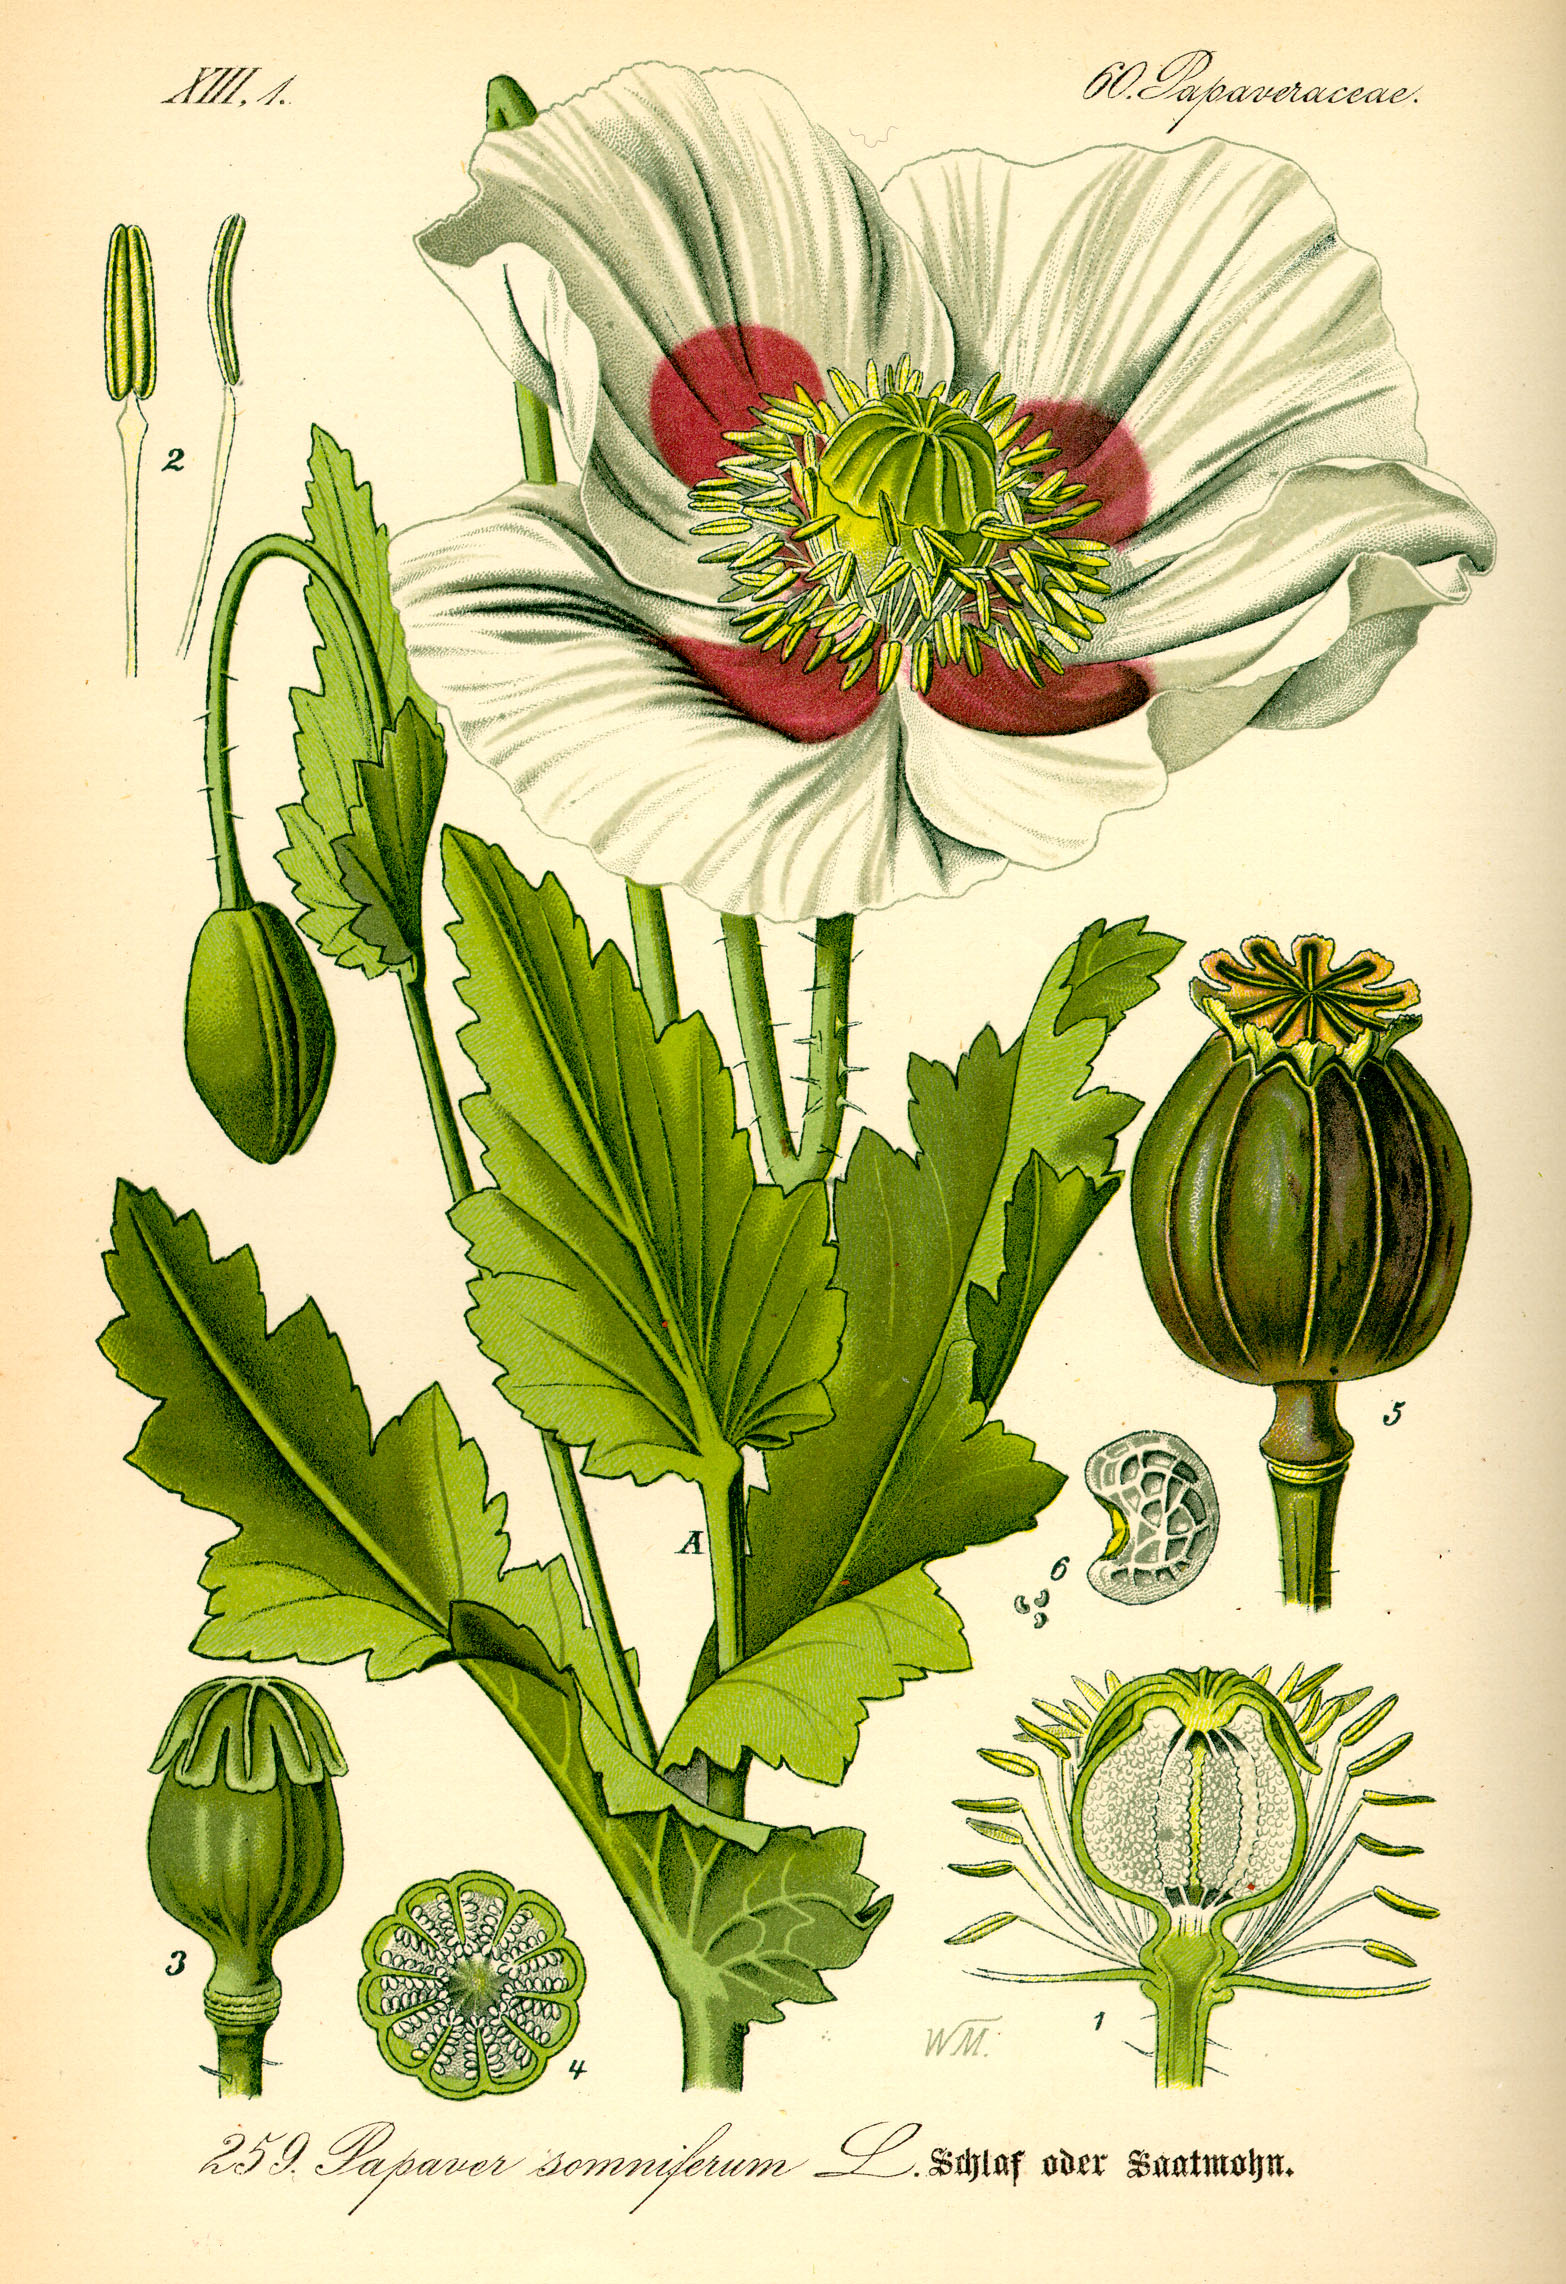 https://i0.wp.com/upload.wikimedia.org/wikipedia/commons/1/18/Illustration_Papaver_somniferum0.jpg